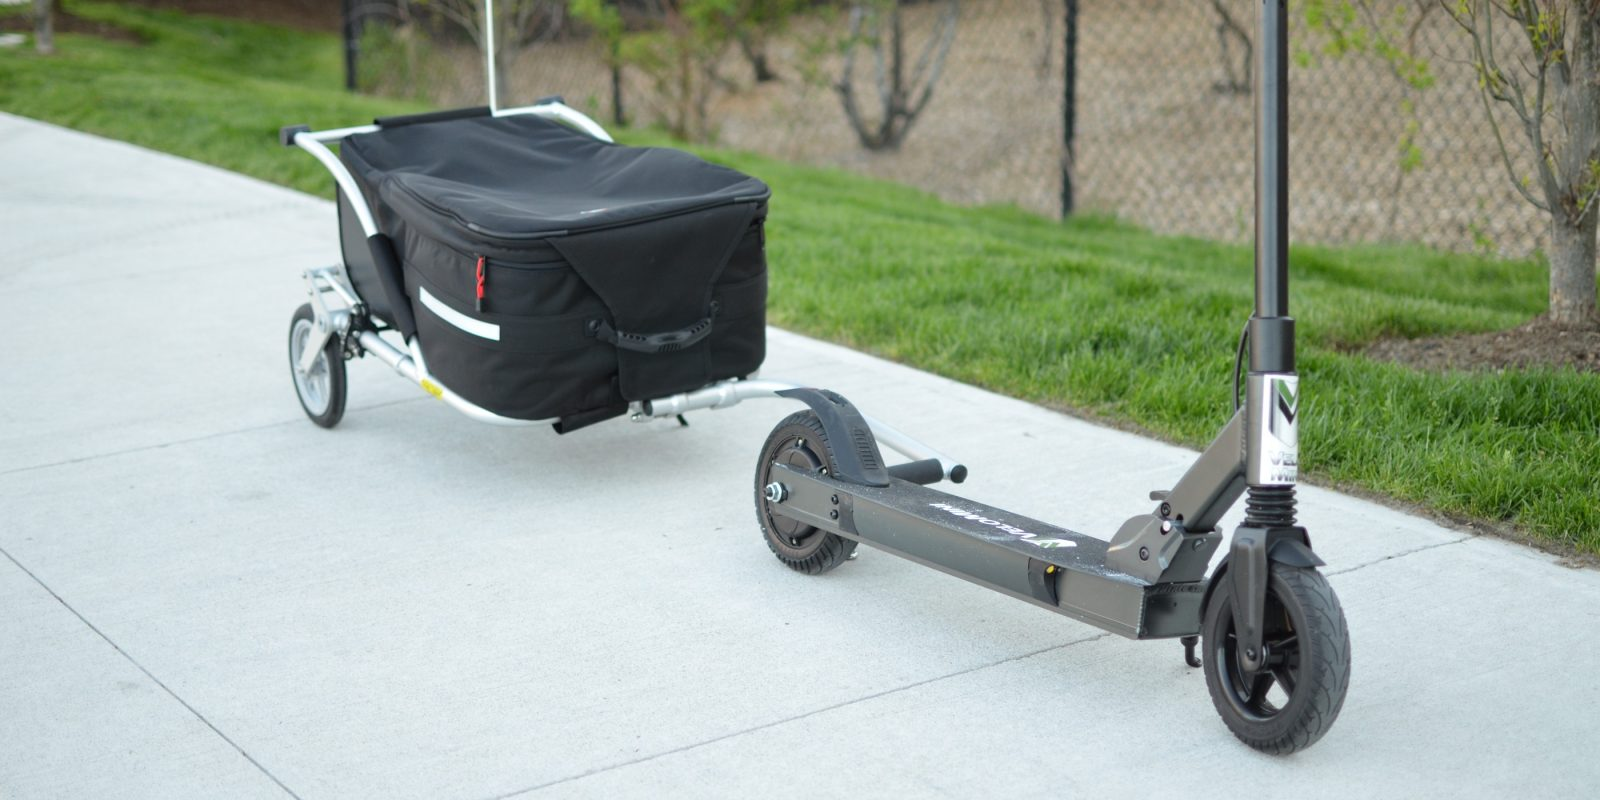 hight resolution of just when i thought i had seen all there was to see in the electric scooter industry the velomini scoot and t1 trailer popped up on my radar